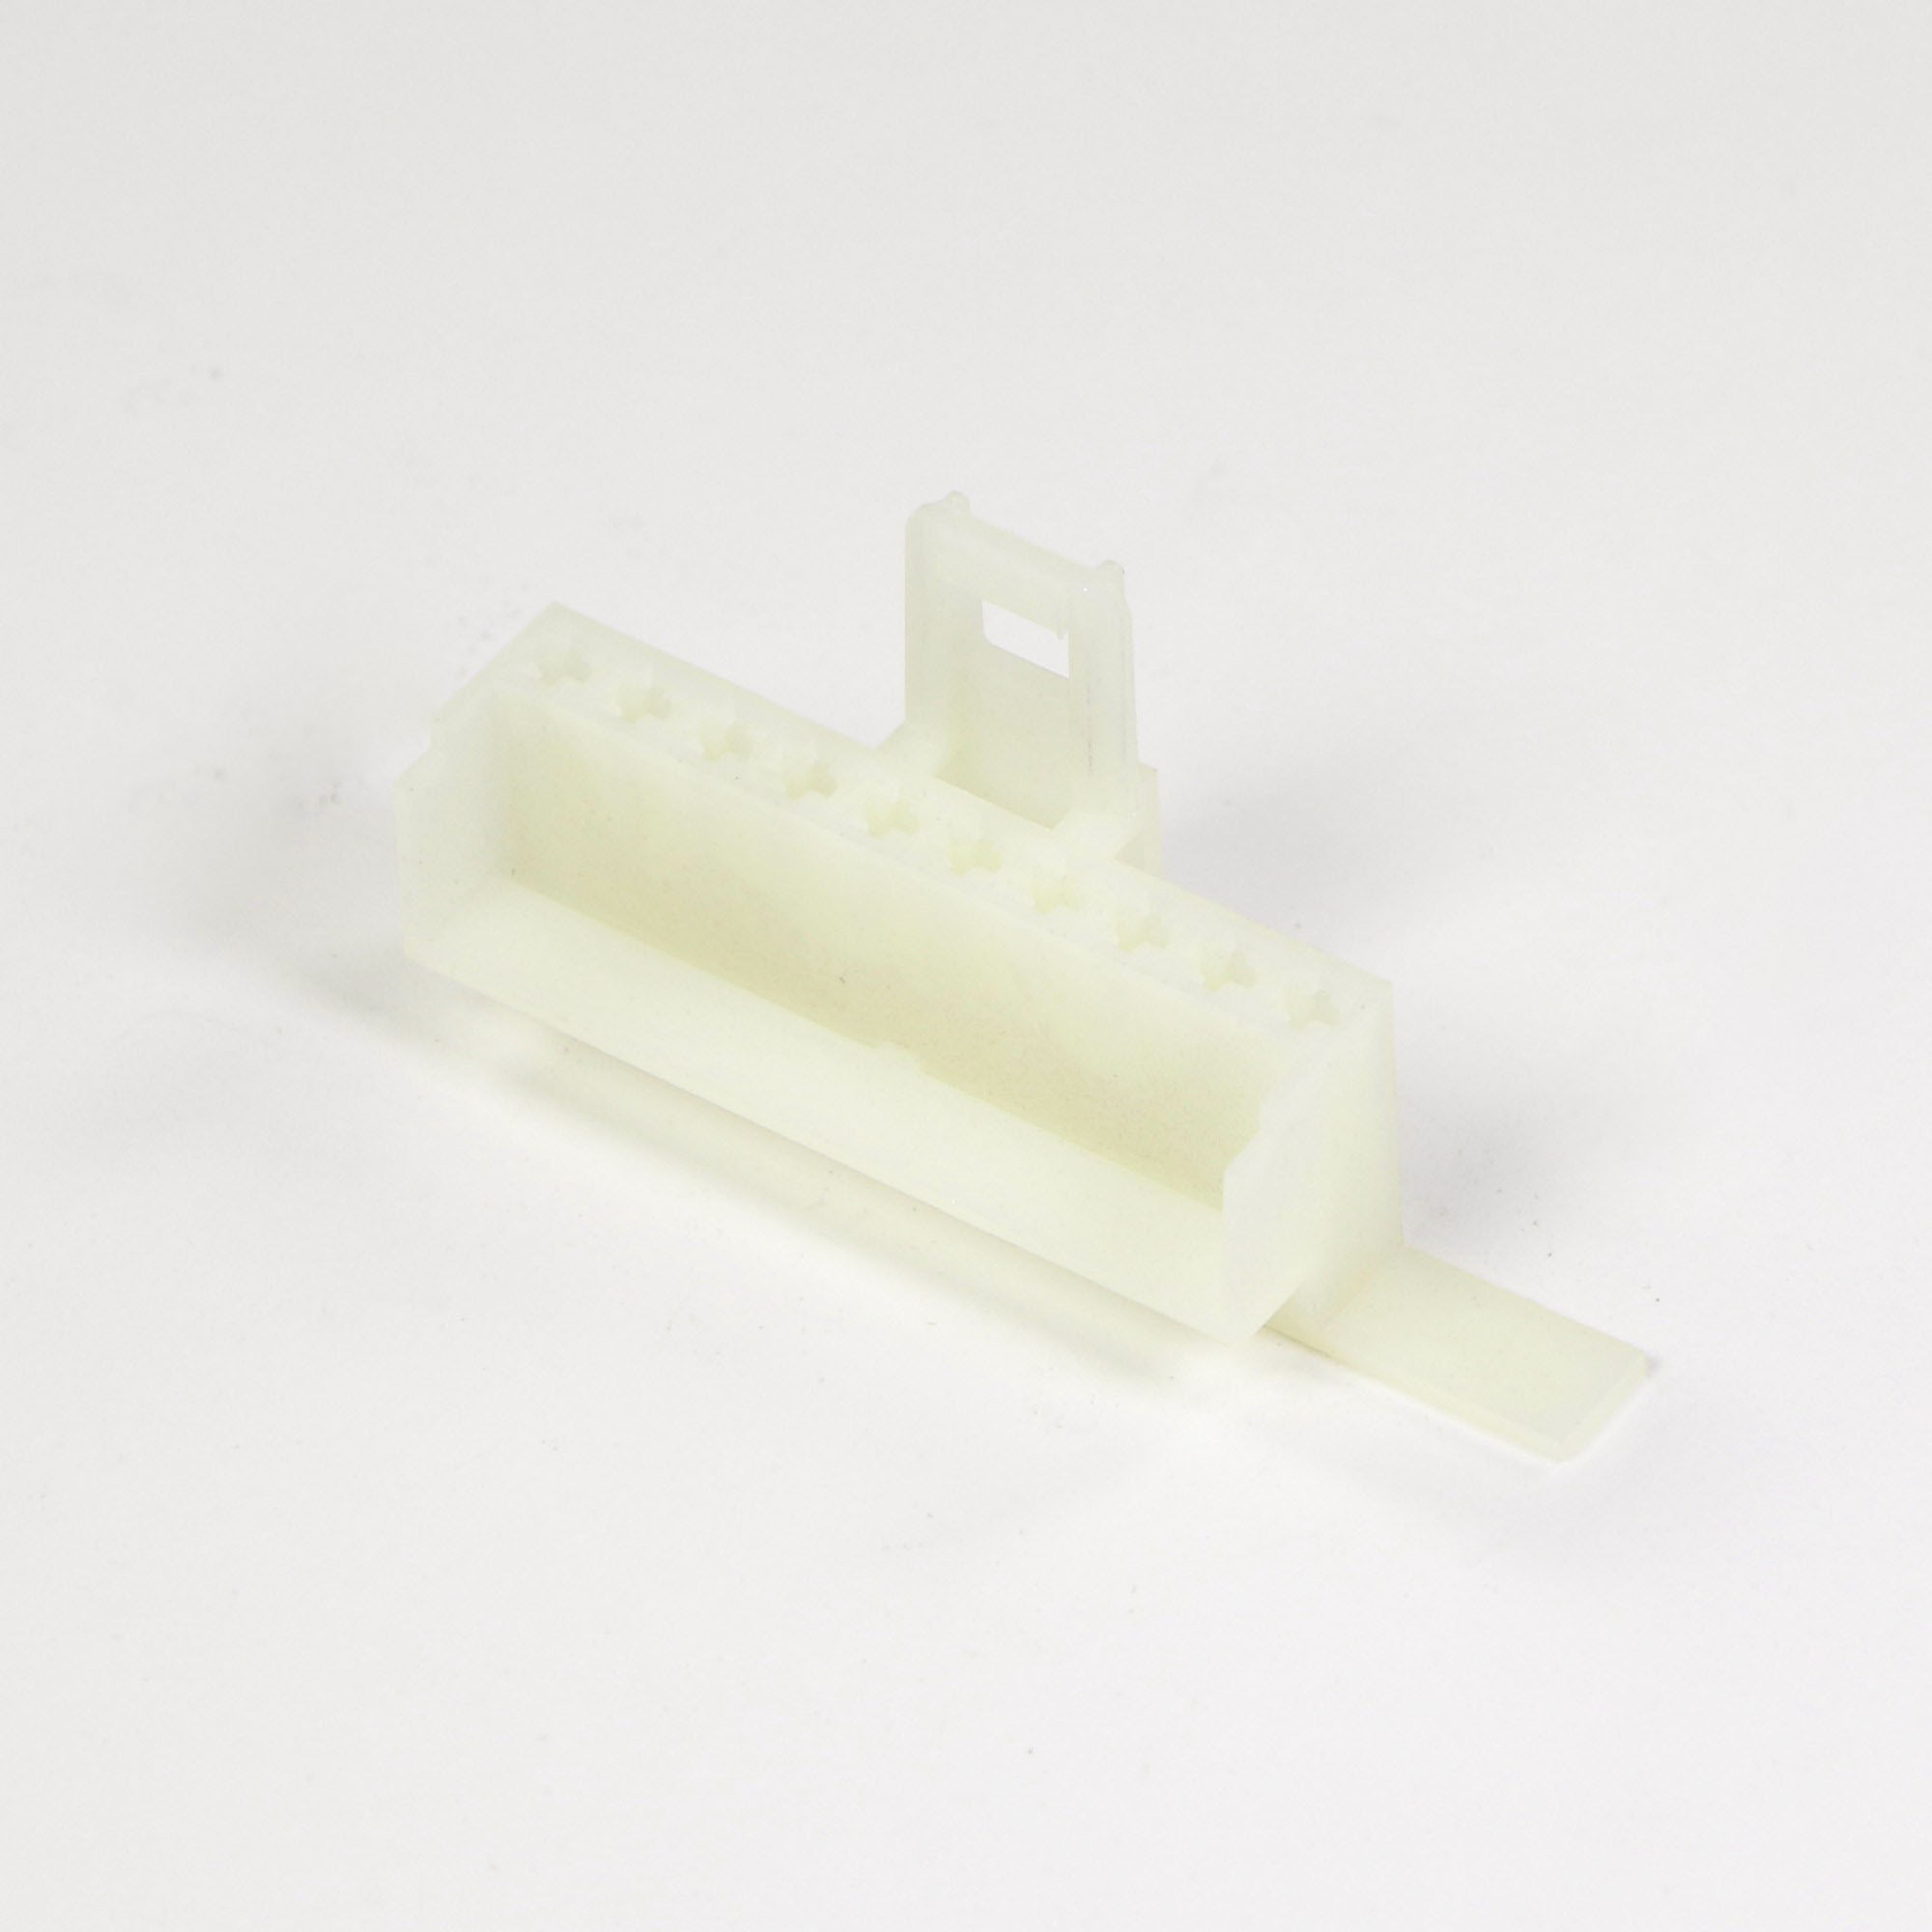 hight resolution of wp62505 for whirlpool washing machine wire harness connector walmart com